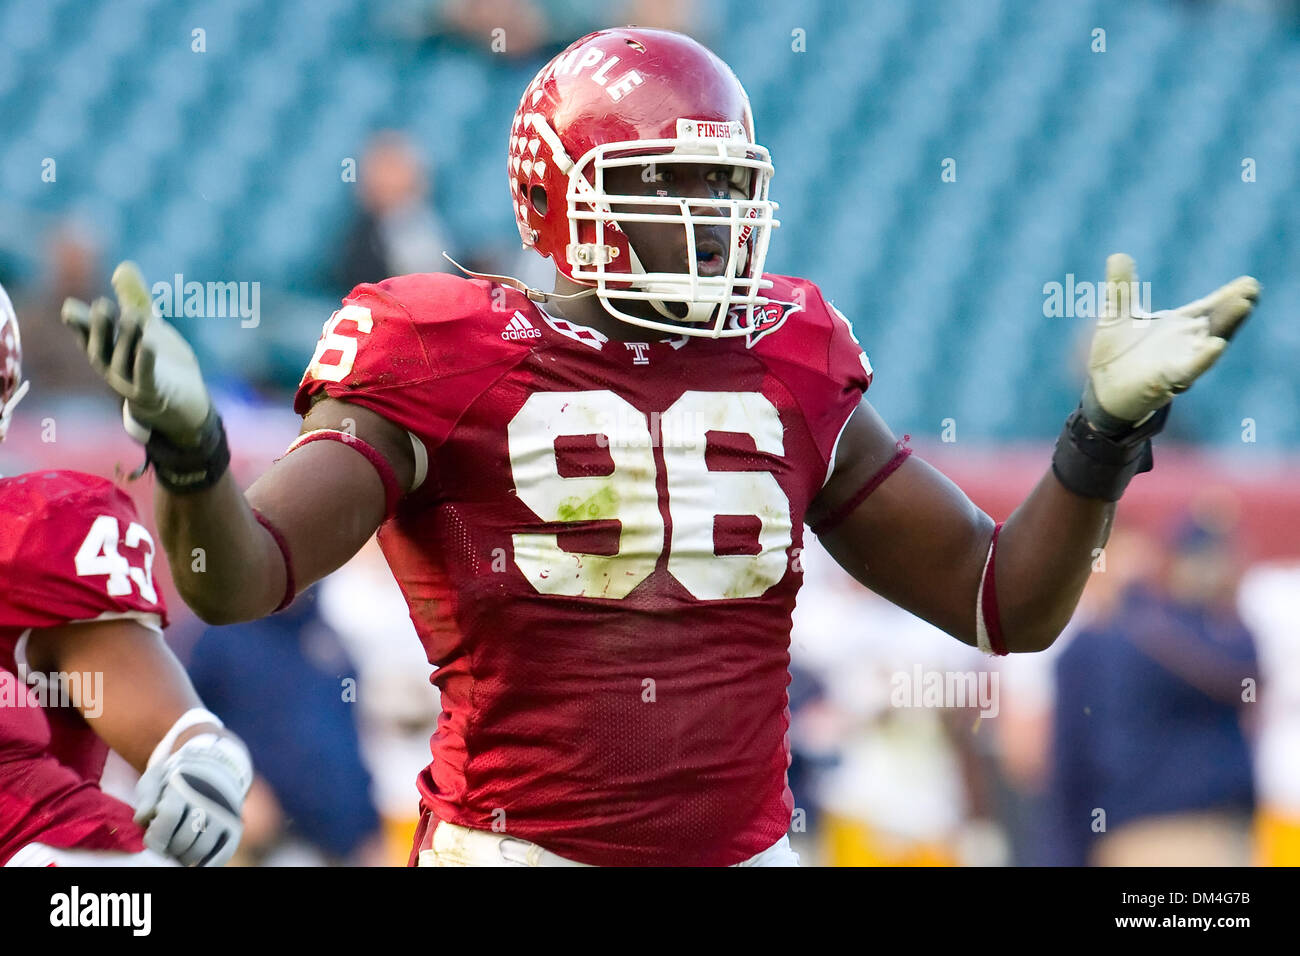 Temple Owls defensive tackle Muhammad Wilkerson 96 celebrating a